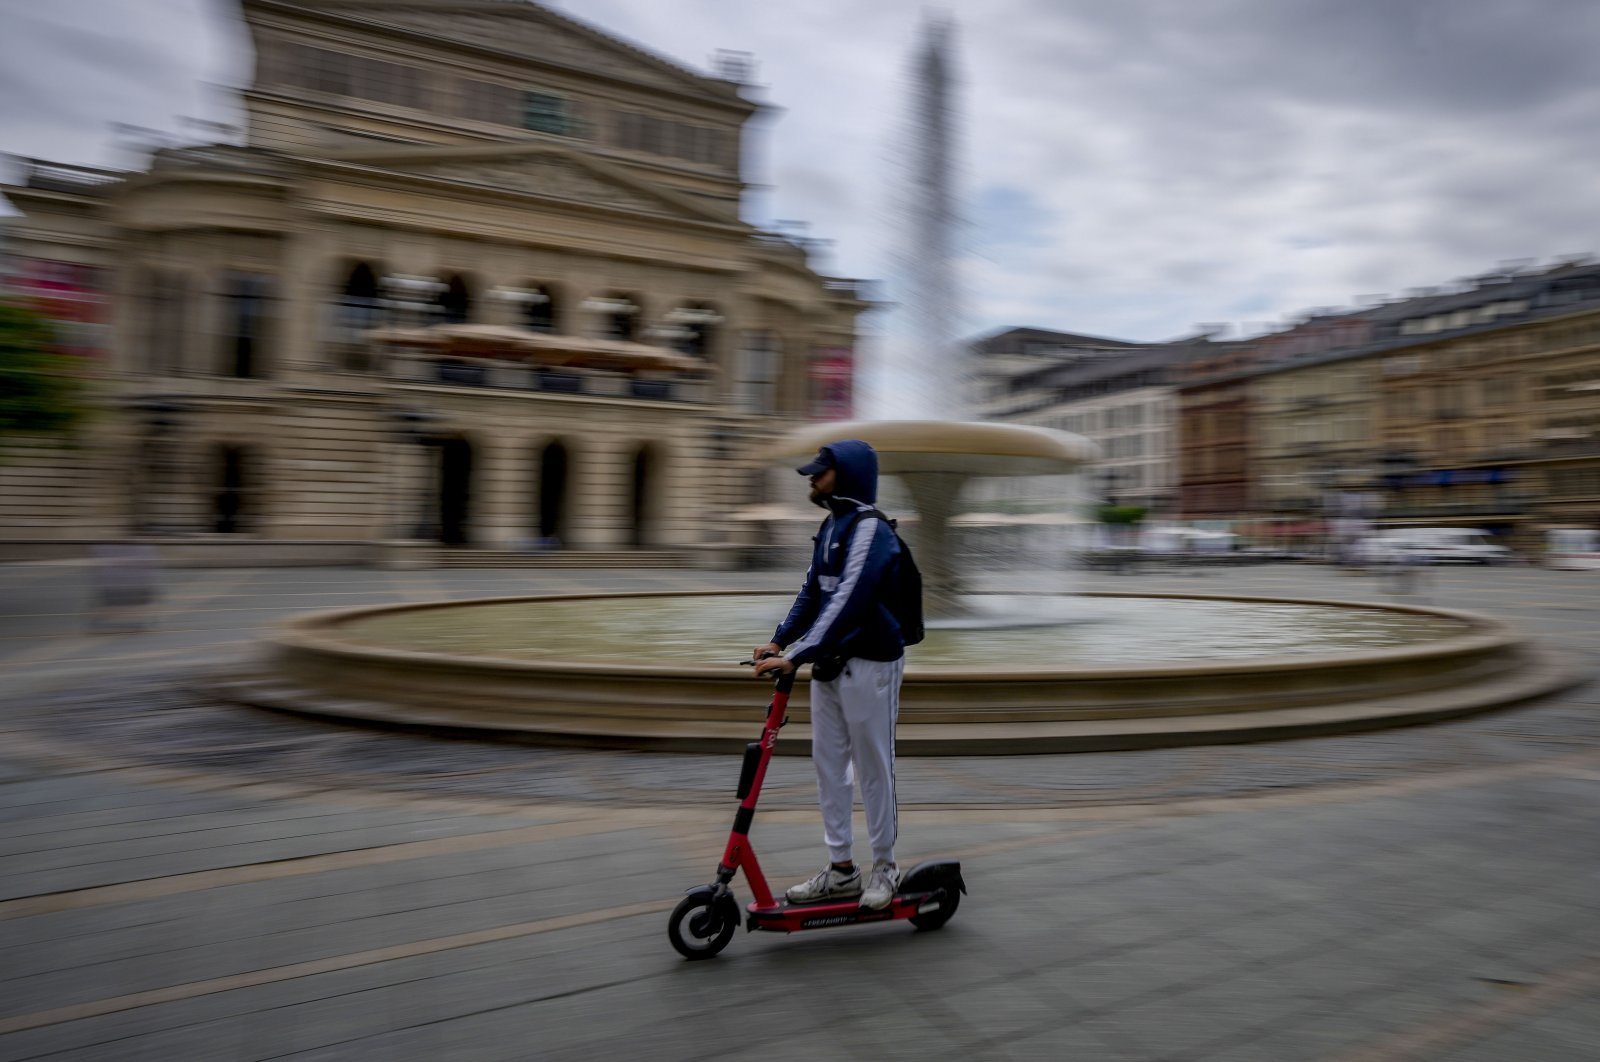 A man riding an e-scooter passes in front of the Old Opera in Frankfurt, Germany, June 22, 2021. (AP Photo)